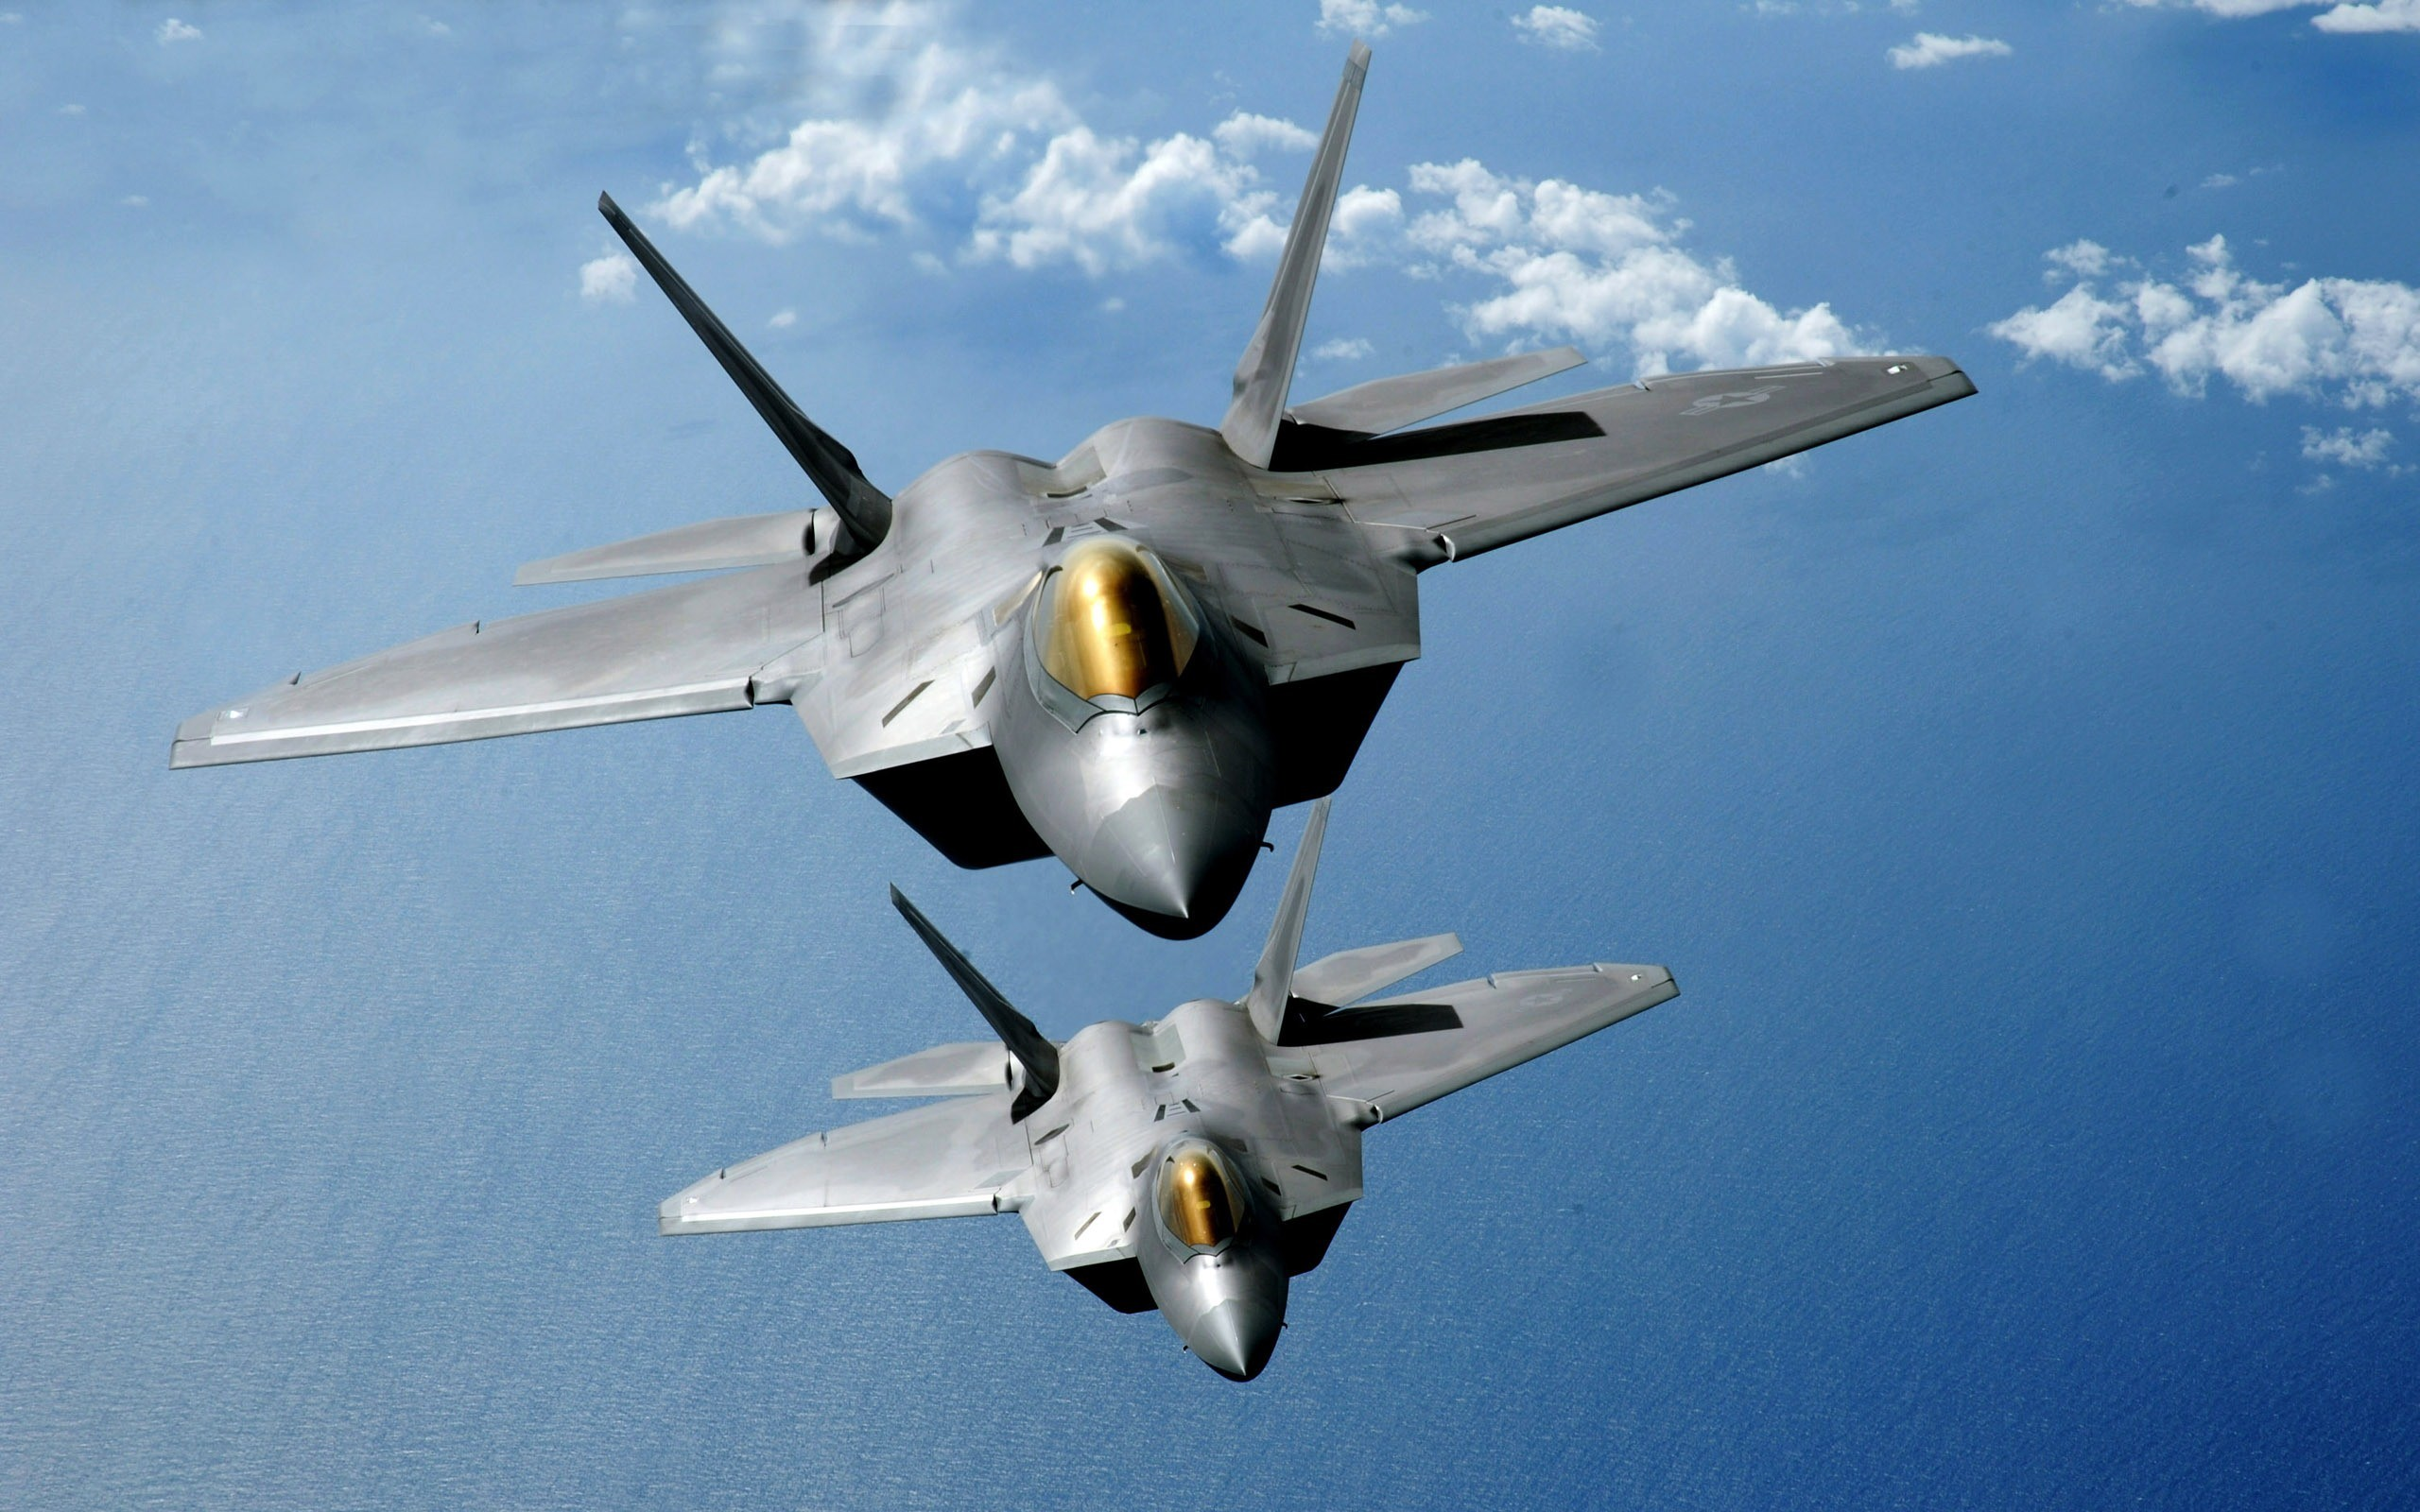 2560x1600 airforce wallpaper 1 Stealth night ops airforce wallpaper 3 ...